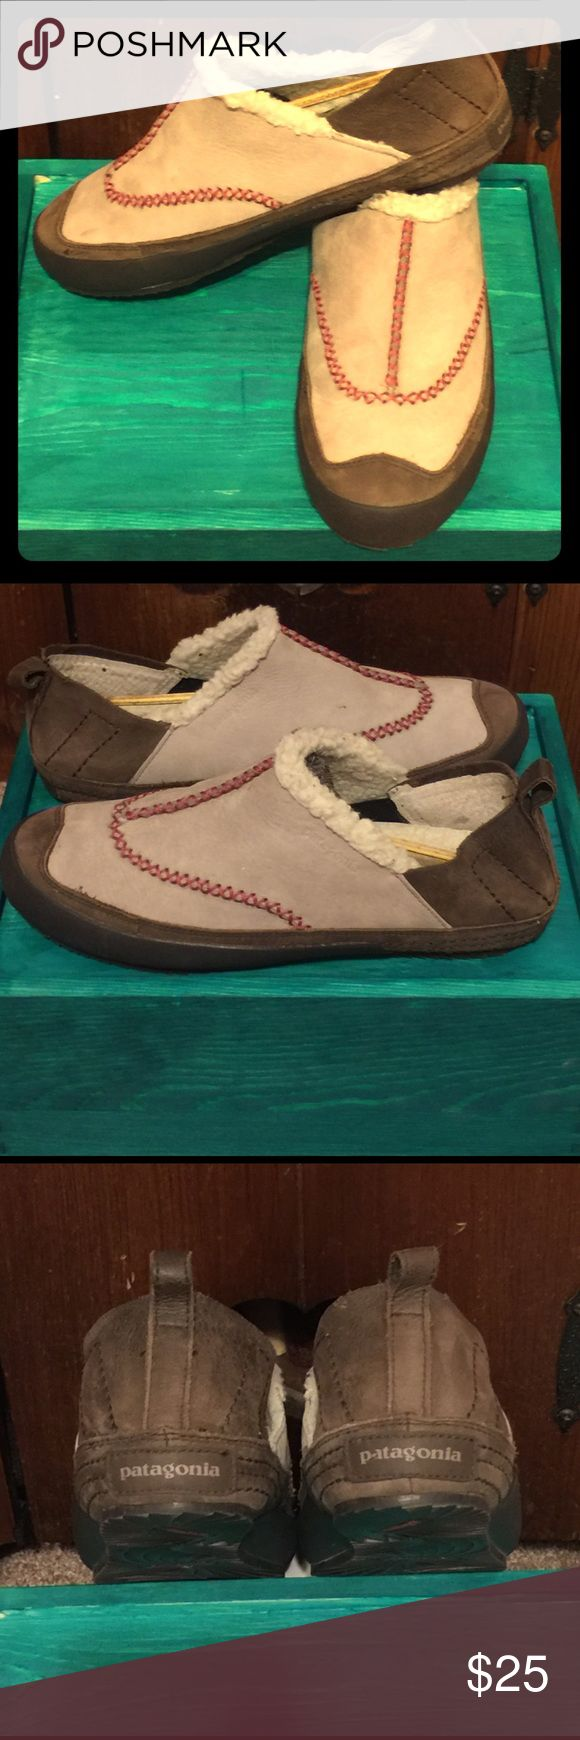 Patagonia shoes Suede body, rubber soles, slip on, warm, water proof, like new Patagonia Shoes Flats & Loafers